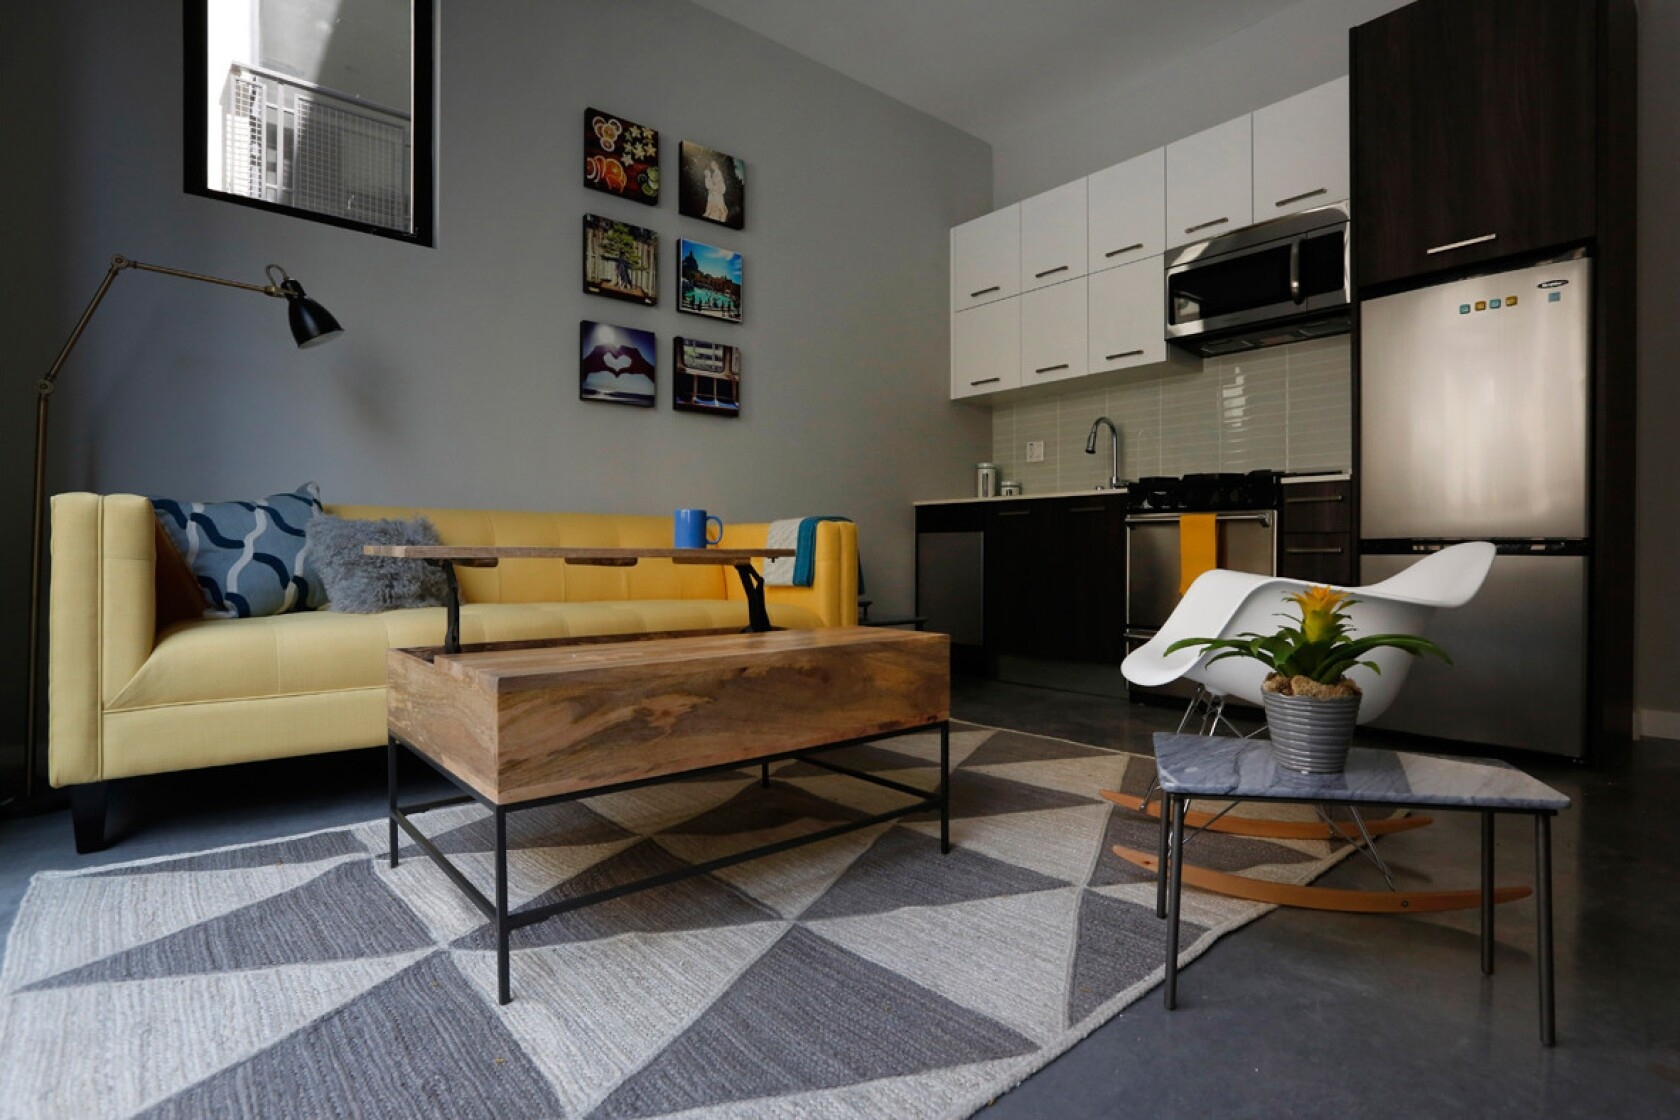 Space Saving Tips For Decorating A Very Small Apartment